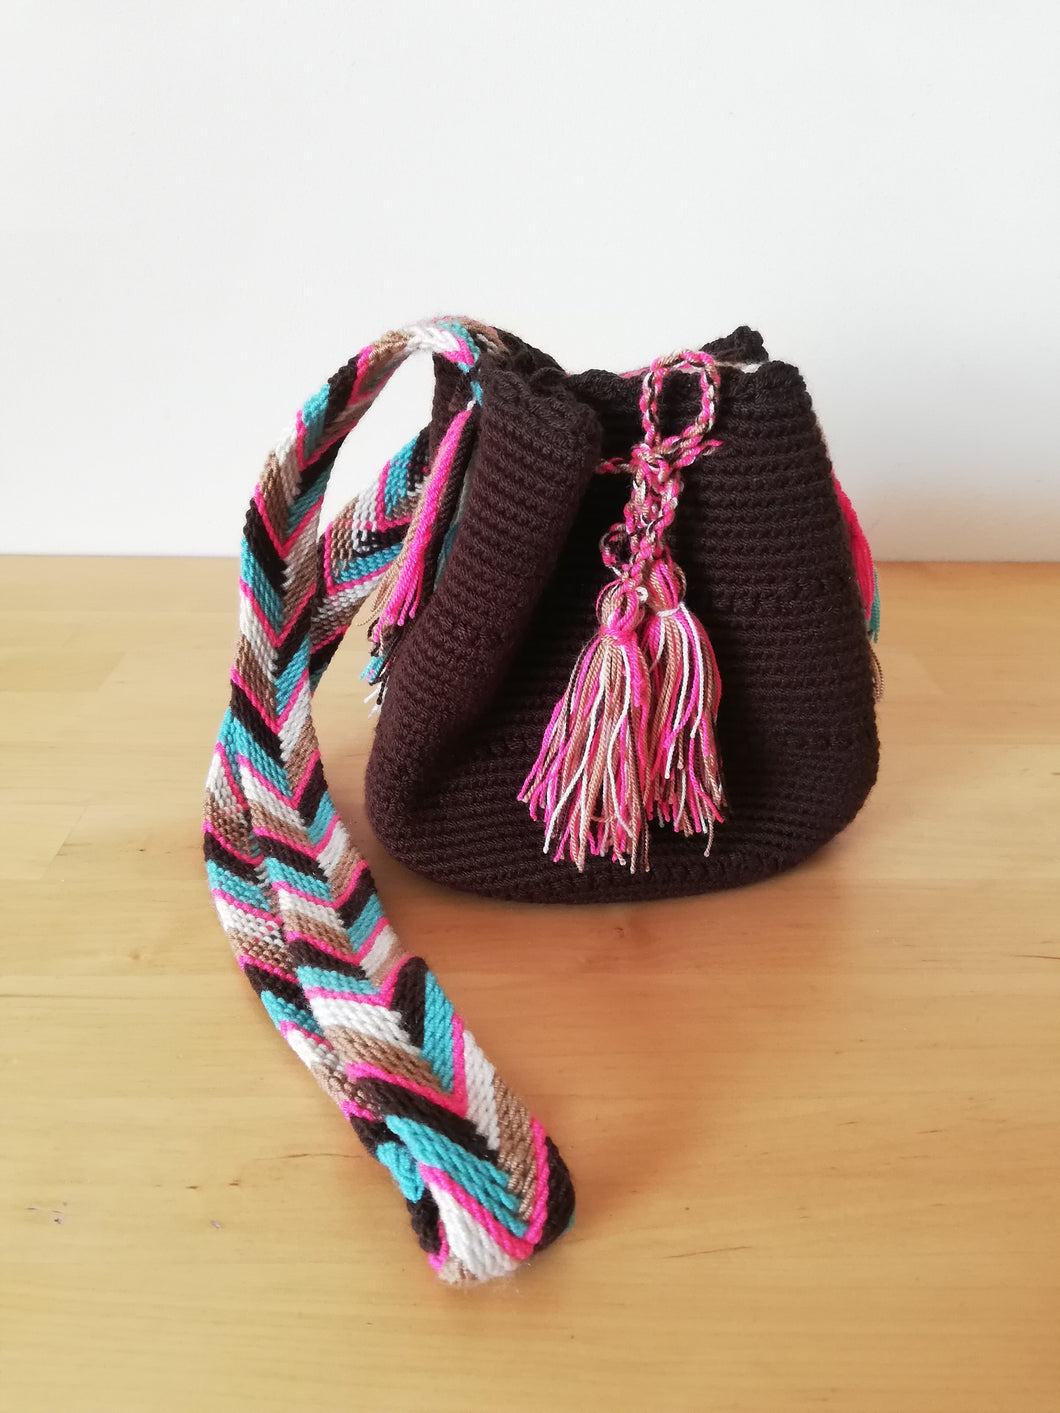 Authentic Handmade Mochilas Wayuu Bags - Small 16